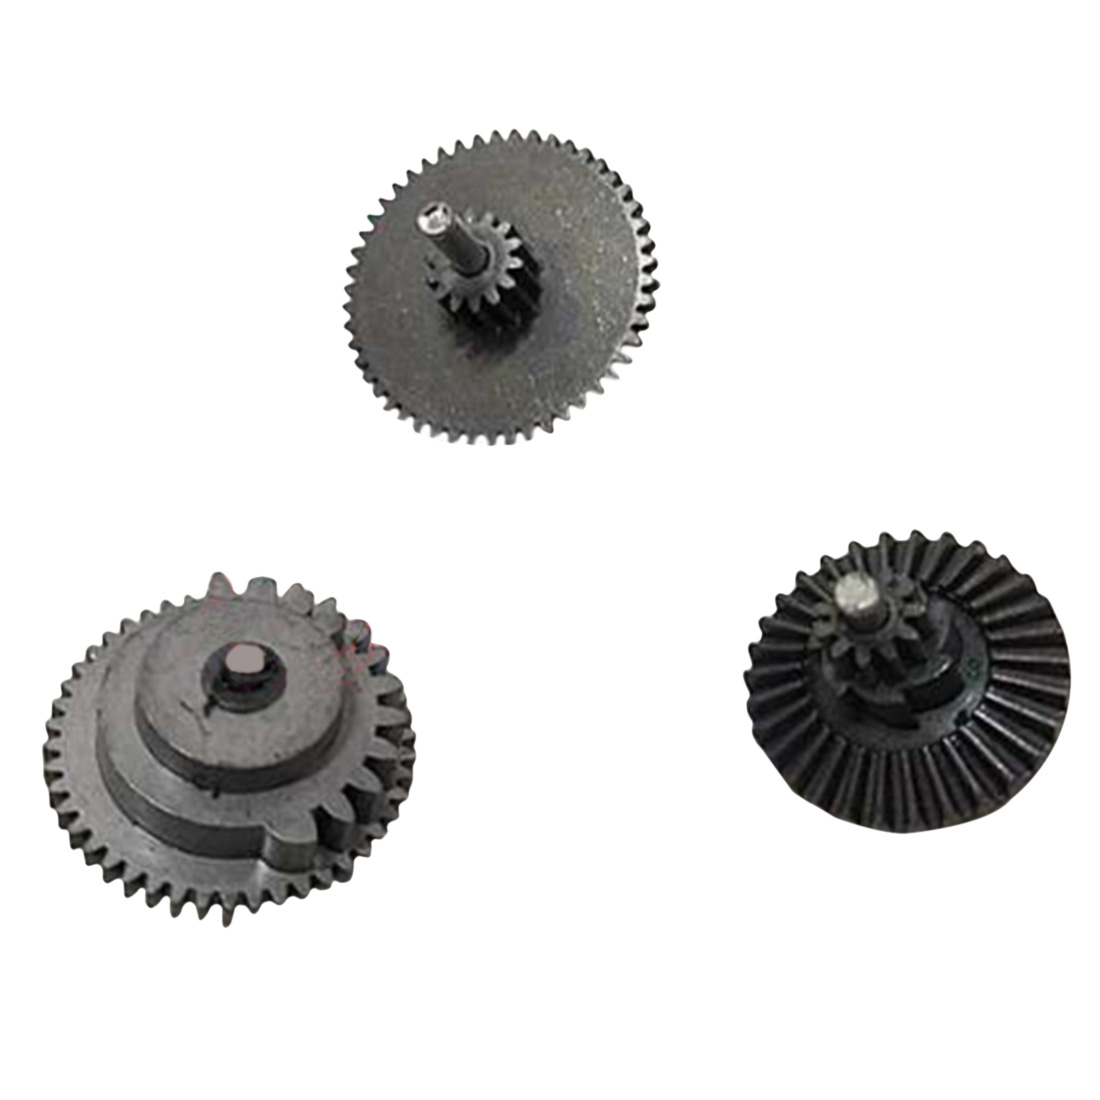 Alloy Gear Set for STD Gen.6 Water Gel Beads Blaster Modification Upgrade Tactical Toy Accessories Silver Black